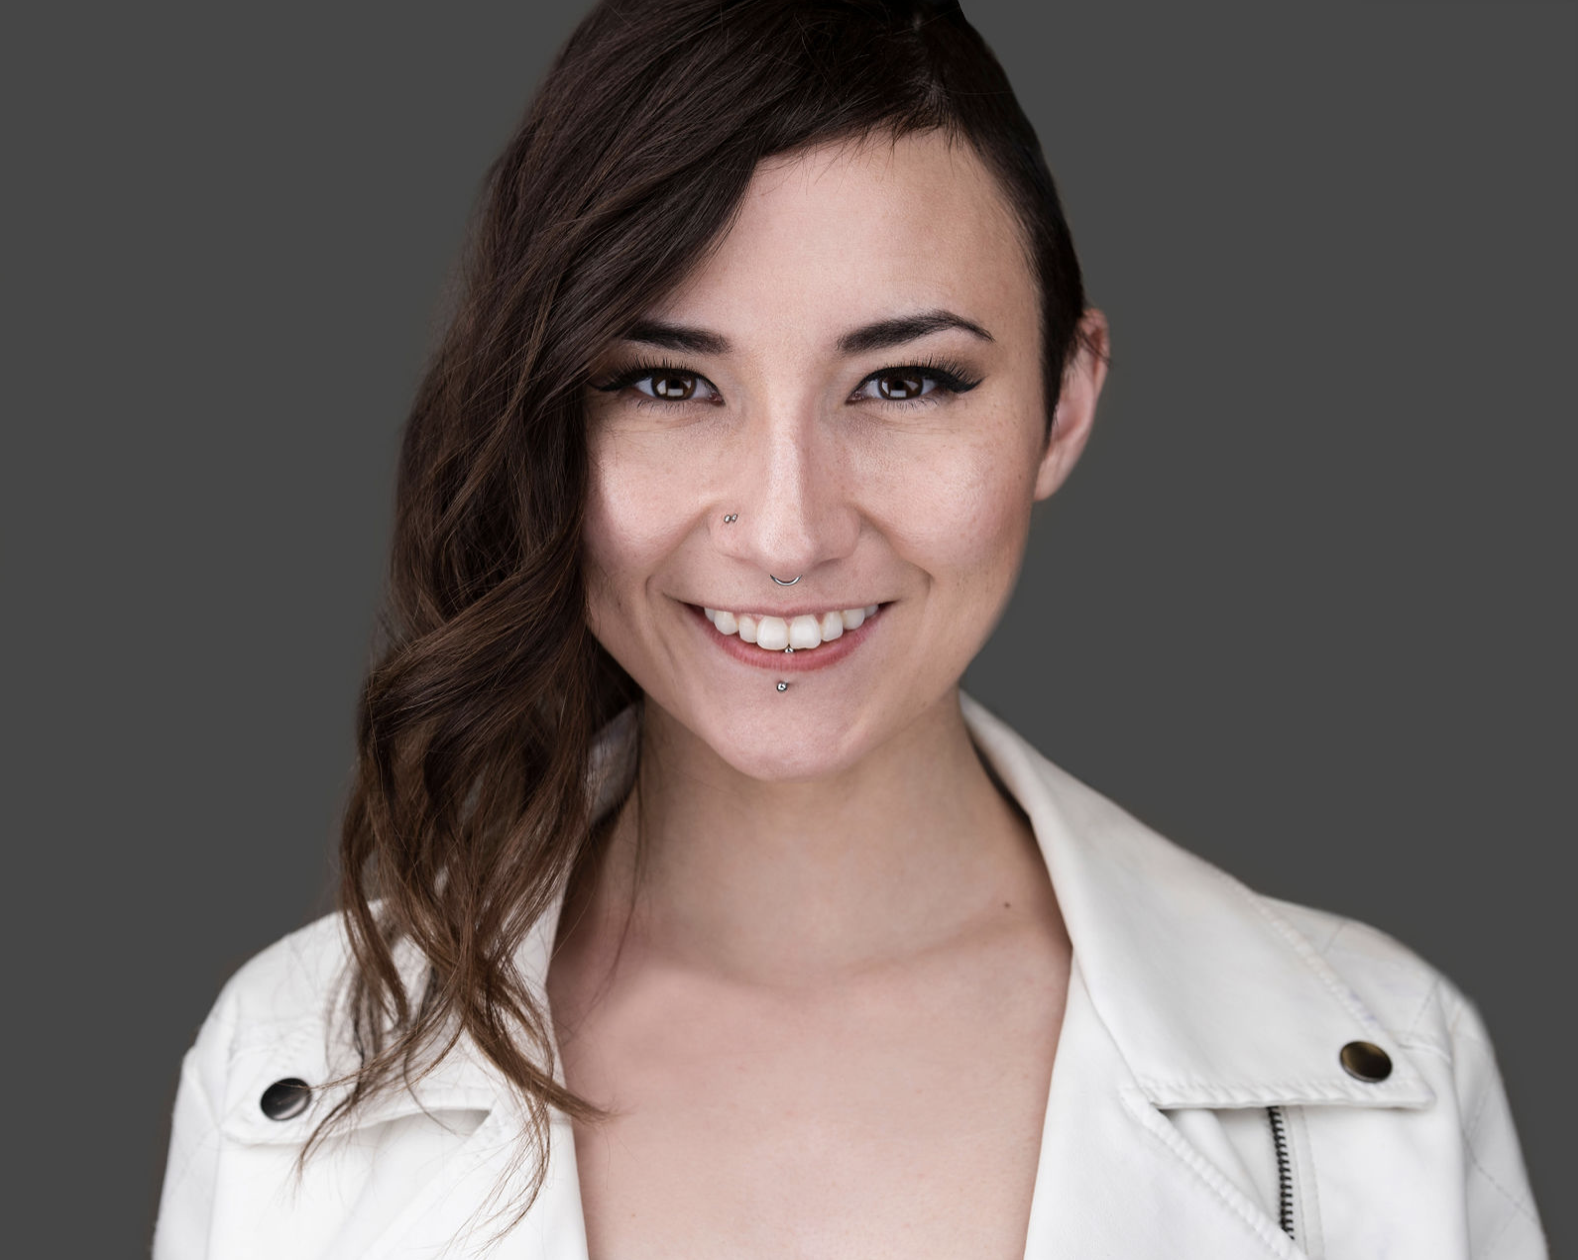 the psychology of the headshot workshop - Click here, to see details, dates, and to register!